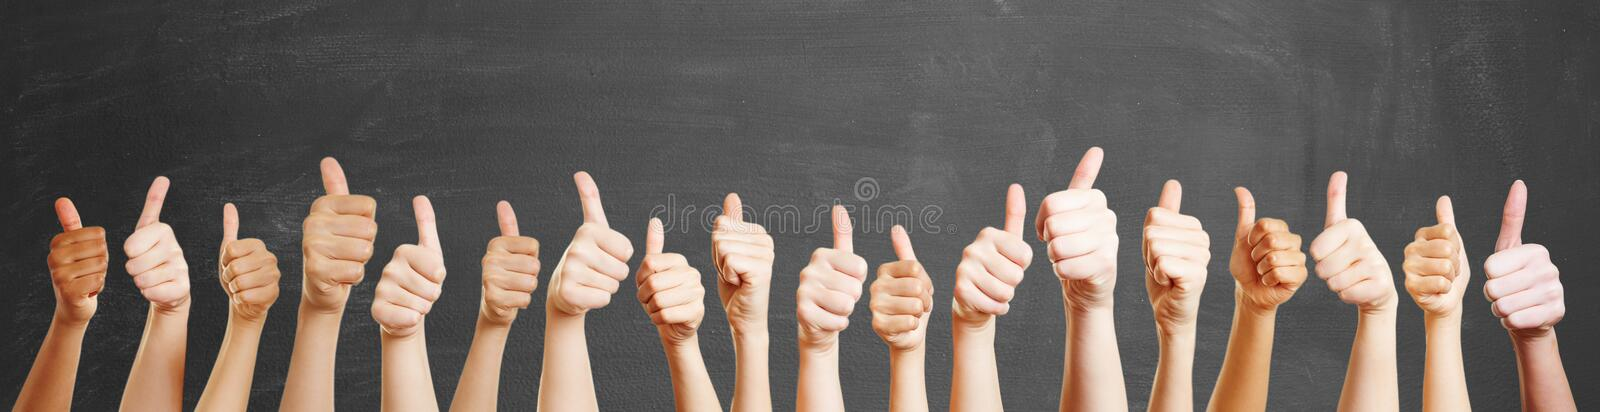 Many hands with thumbs up stock image